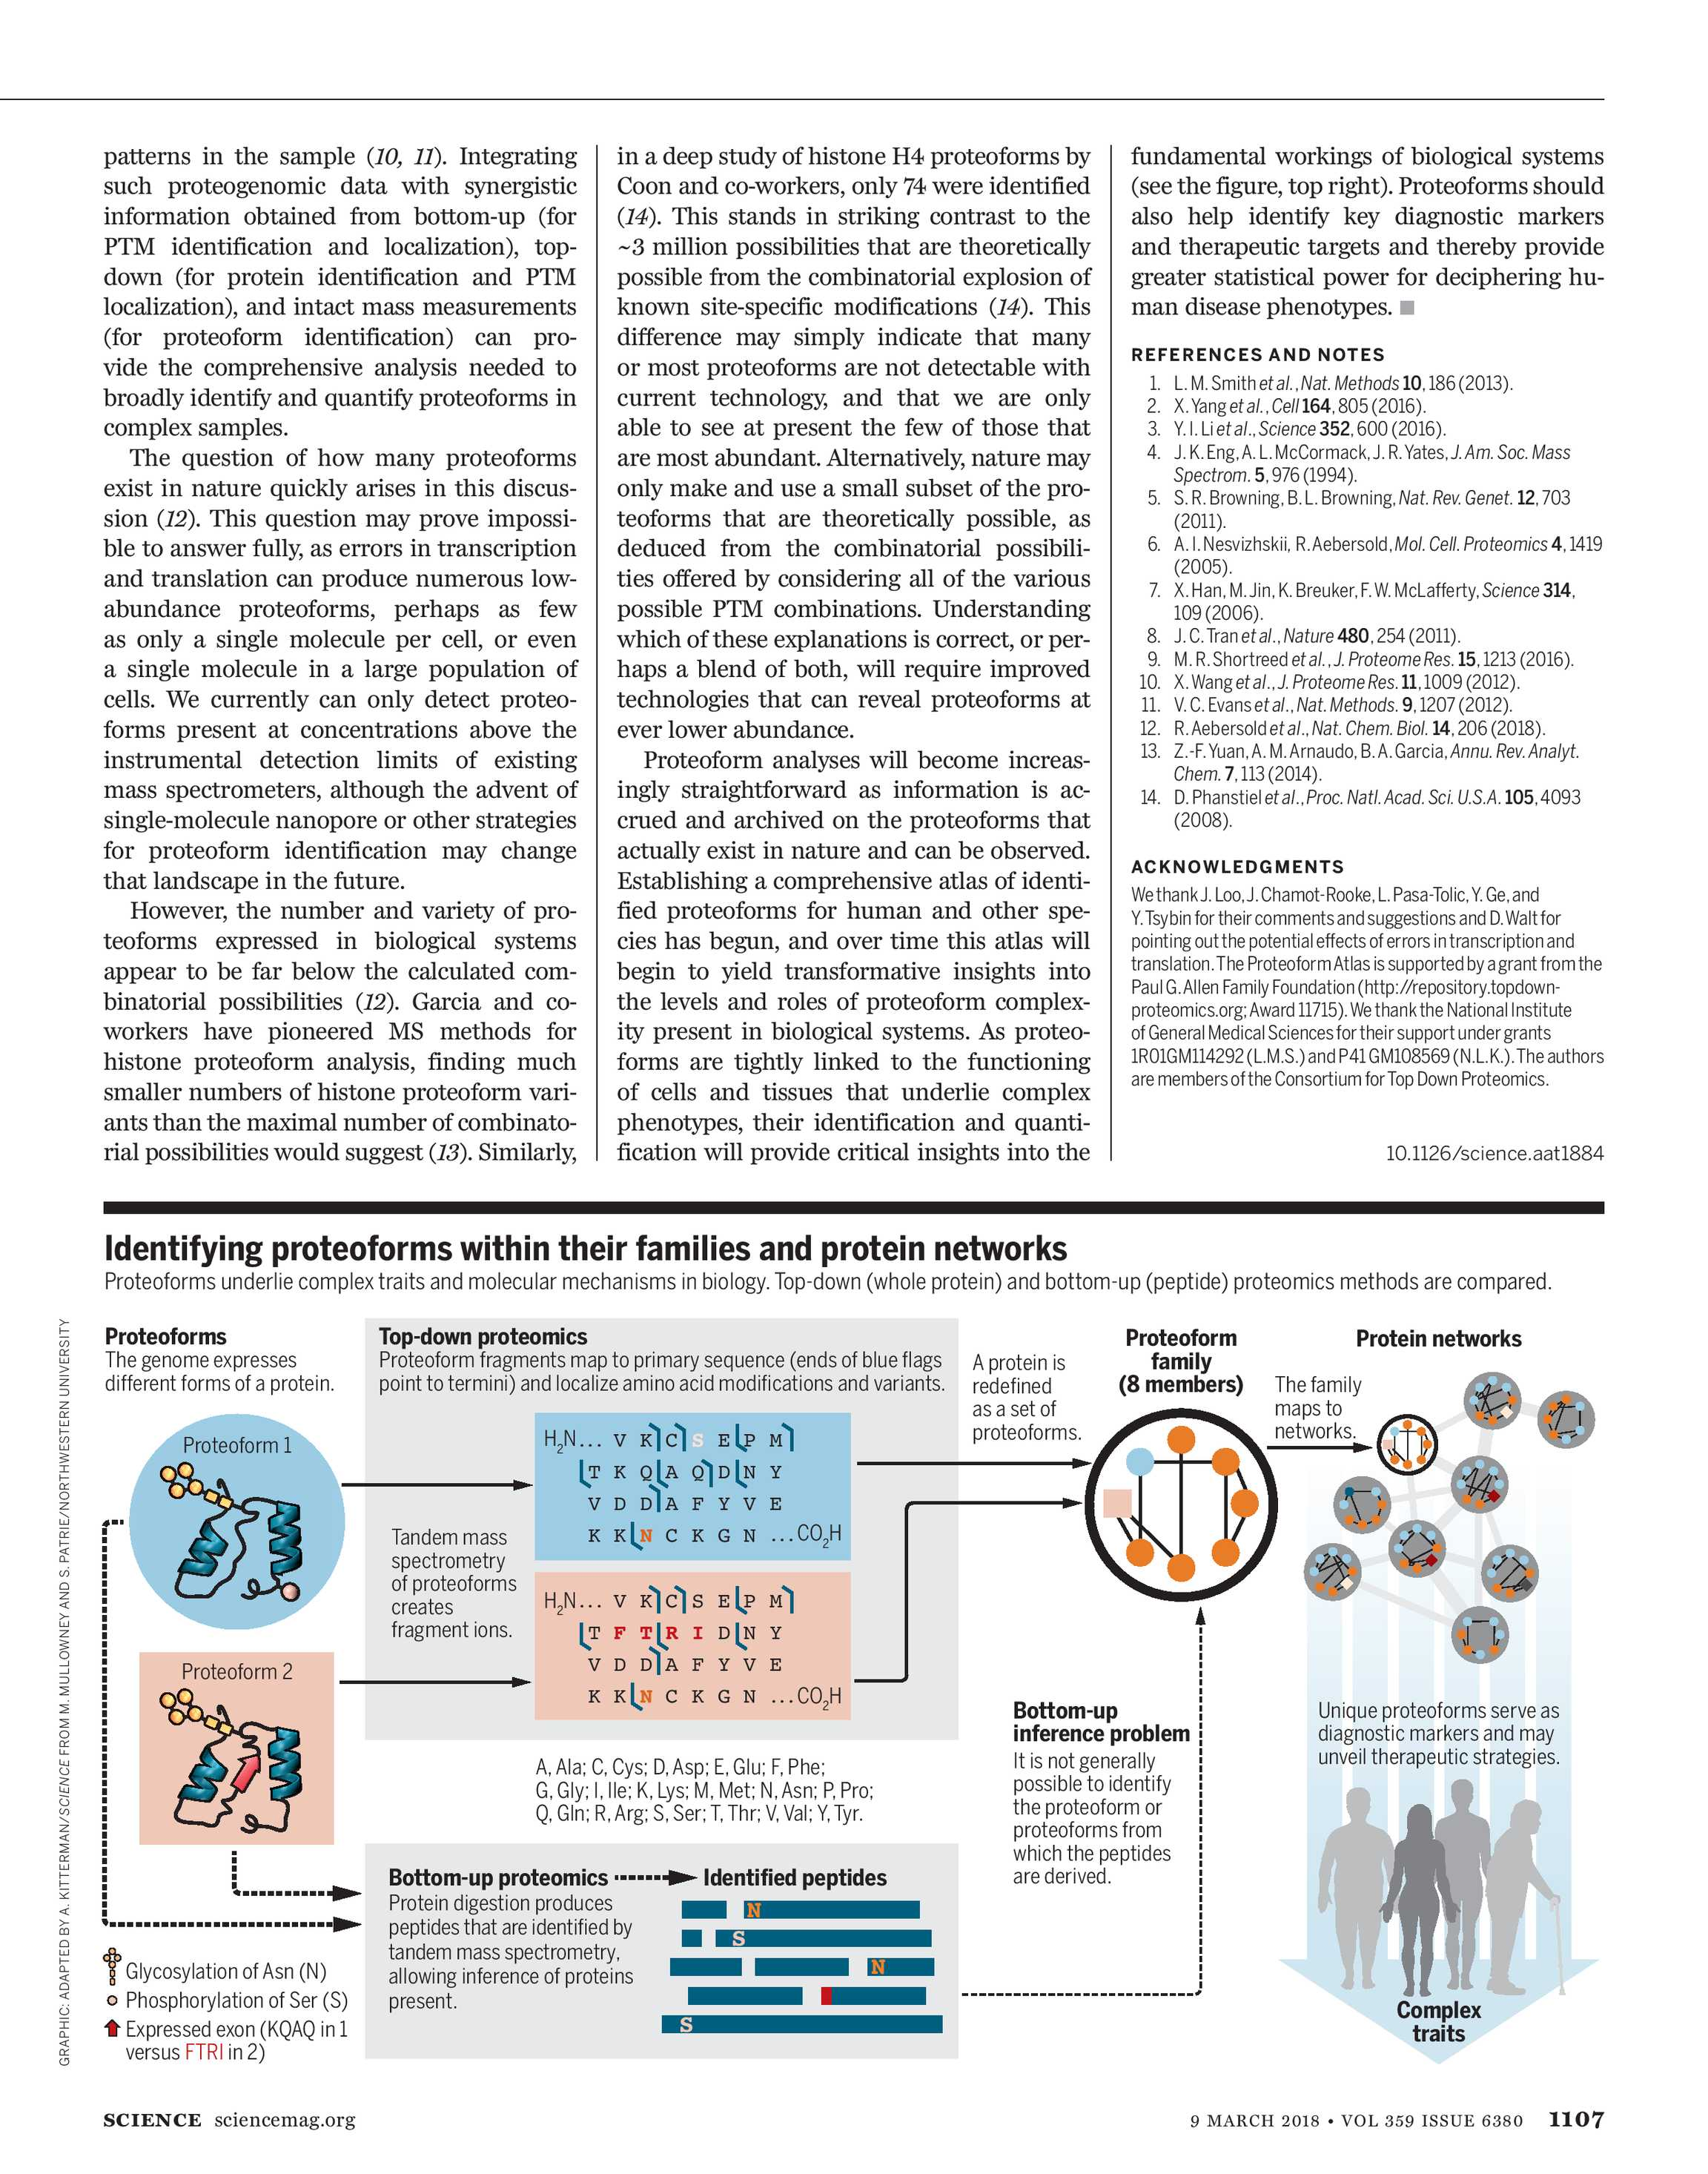 Science Magazine - March 9, 2018 - page 1108